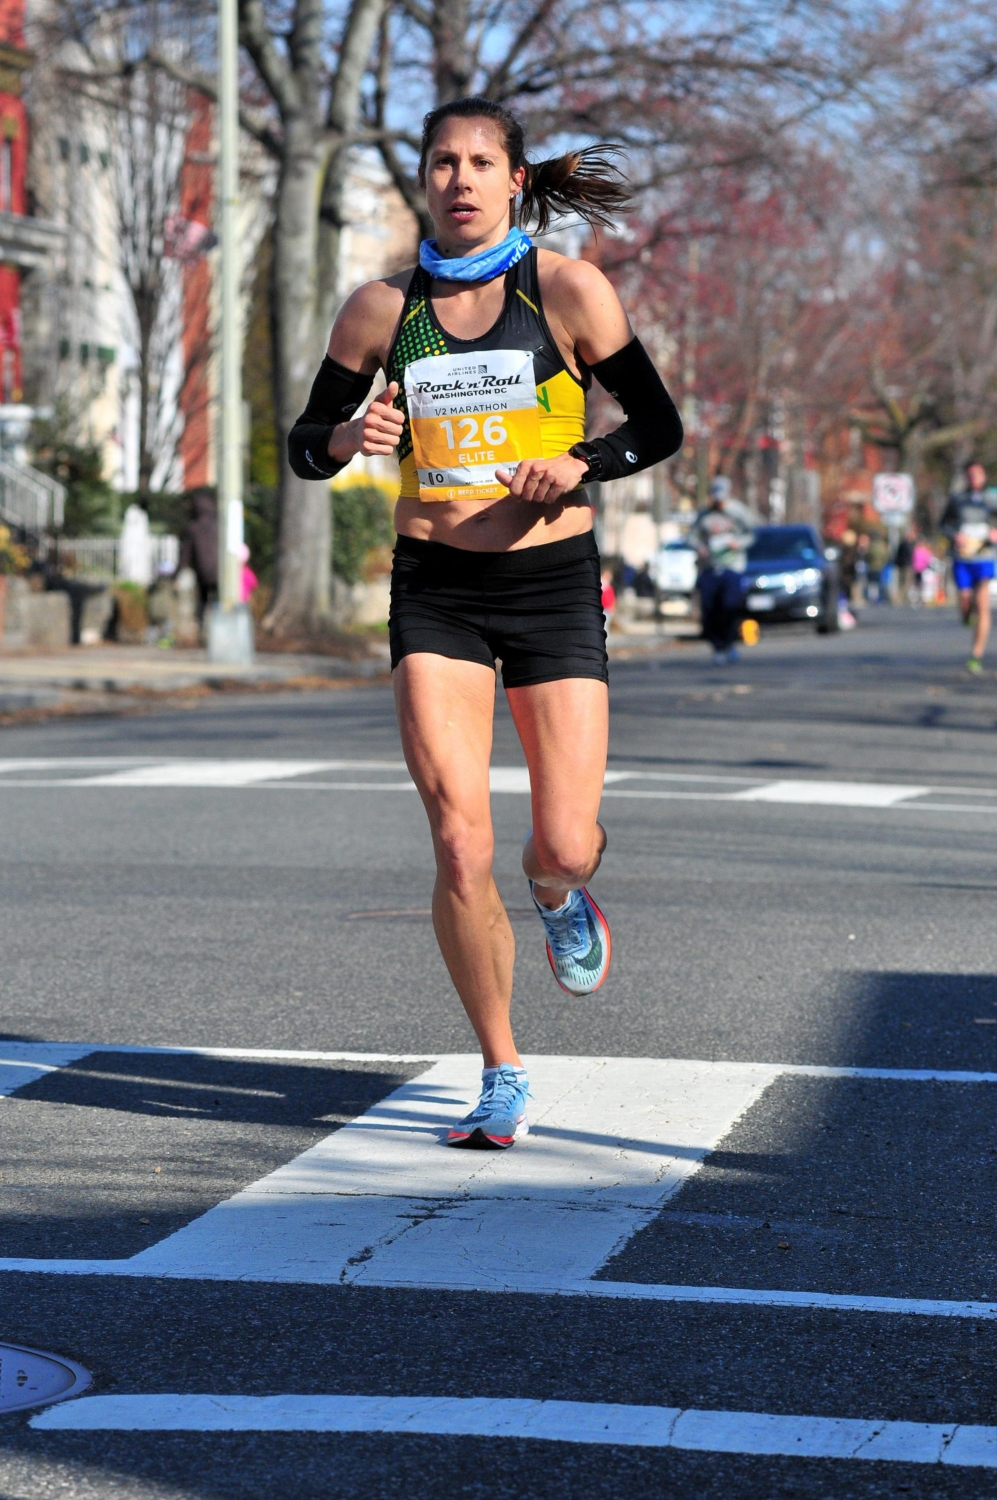 Sarah Bishop is one of the elites Running the 3M Half Marathon